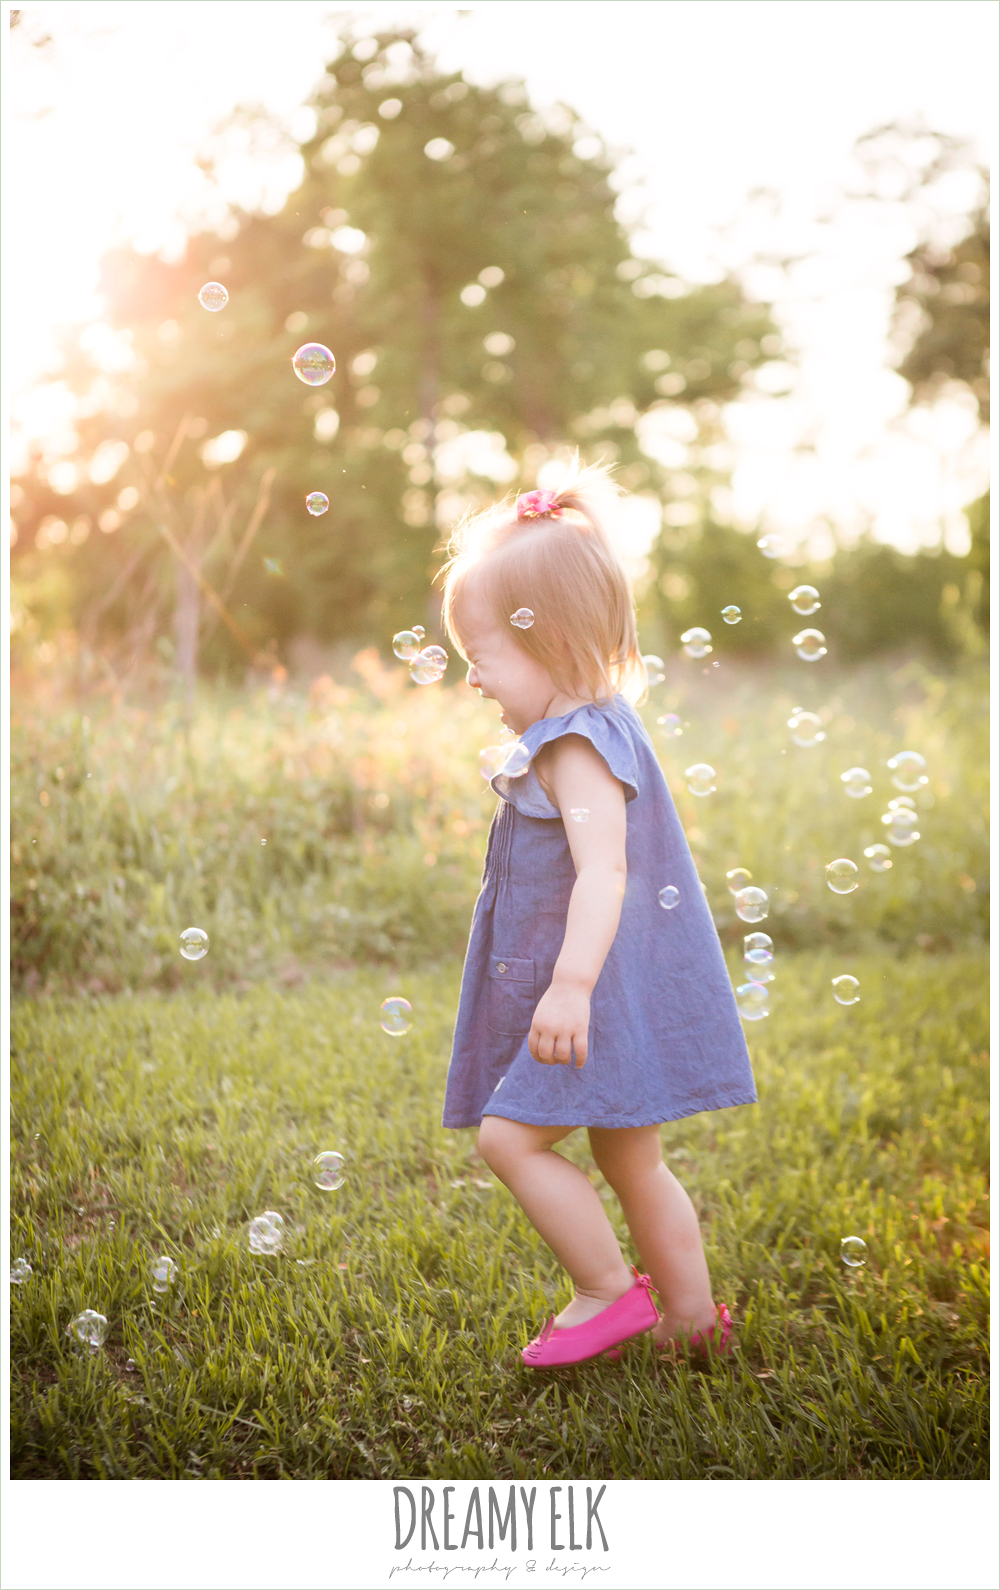 18 month old photo, photo of girl toddler outside crying with bubbles